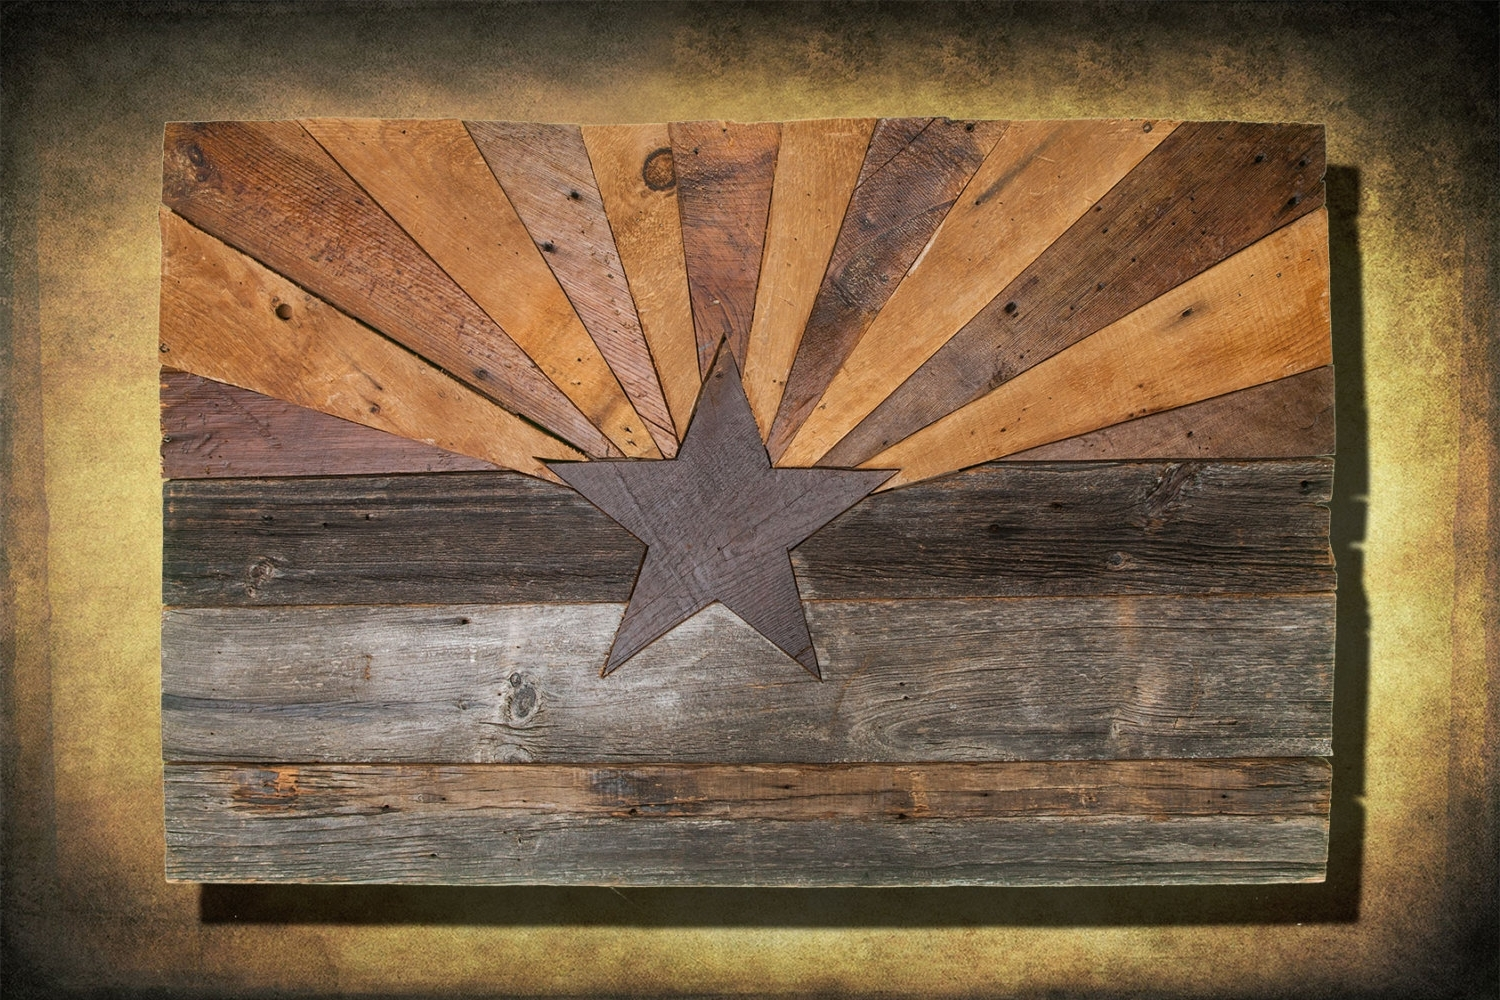 Newest Barn Wood Arizona Flag, Handmade, Distressed Natural Wood, Vintage Regarding Arizona Wall Art (Gallery 2 of 20)